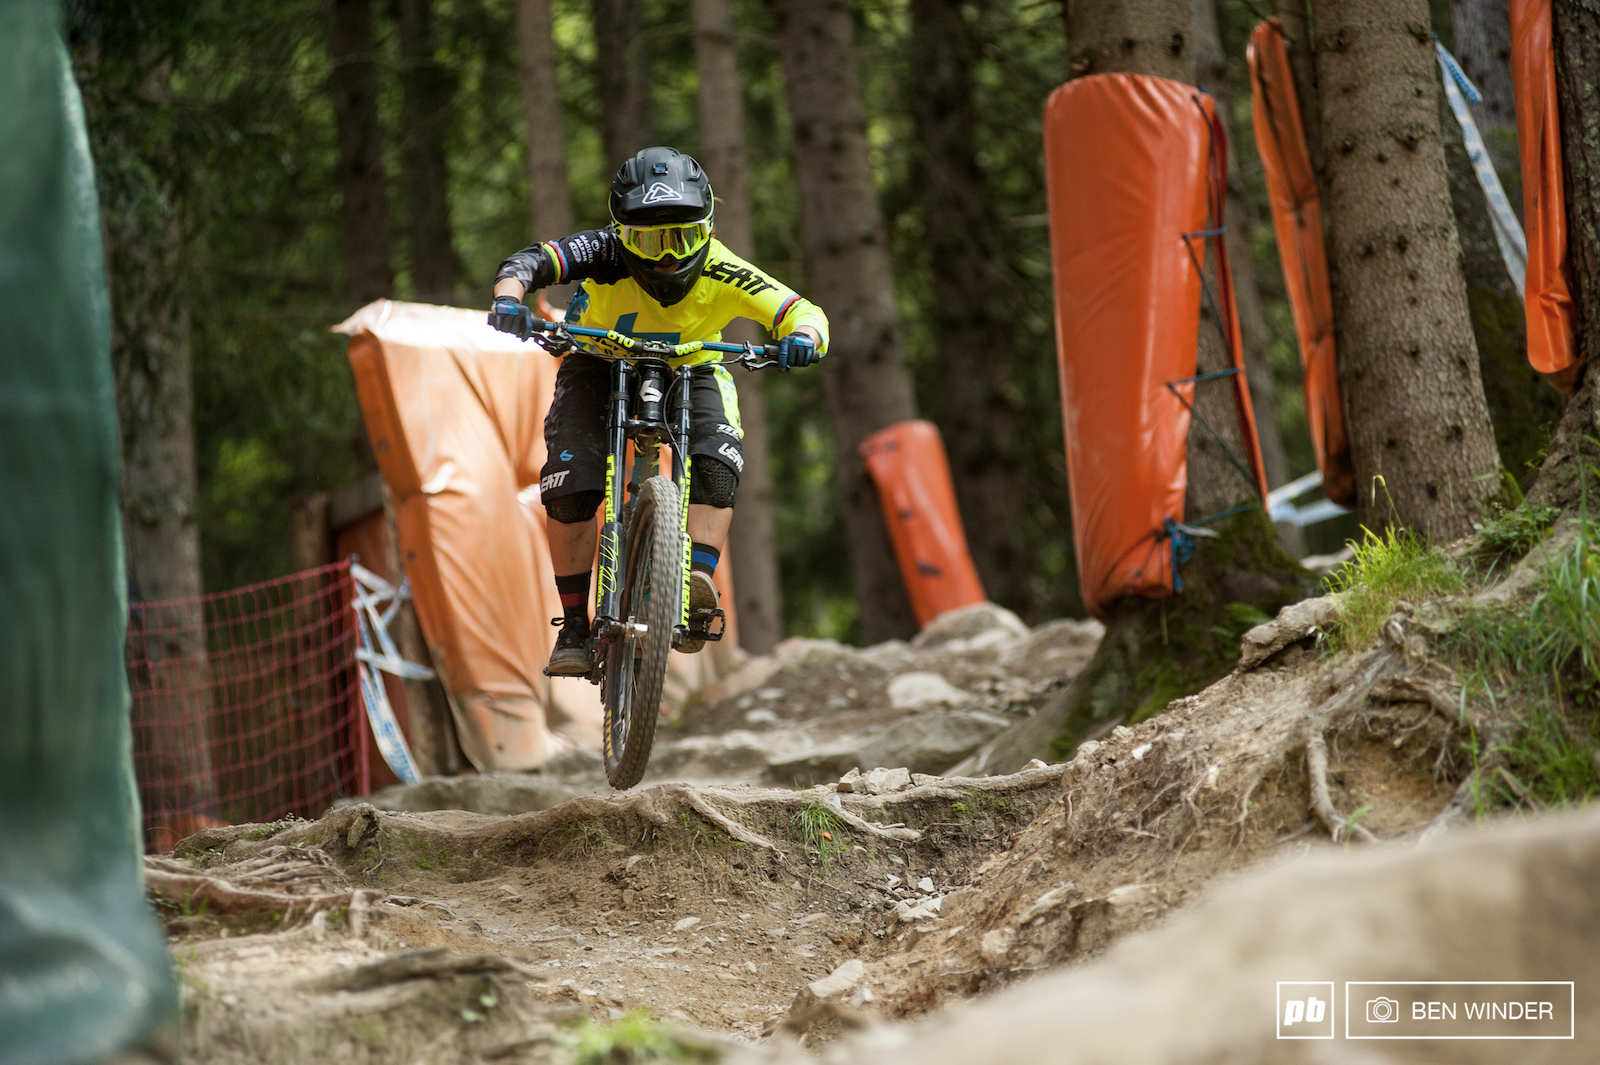 Morgane putting in a run on a course she knows well she won the World Champs here in 2012.